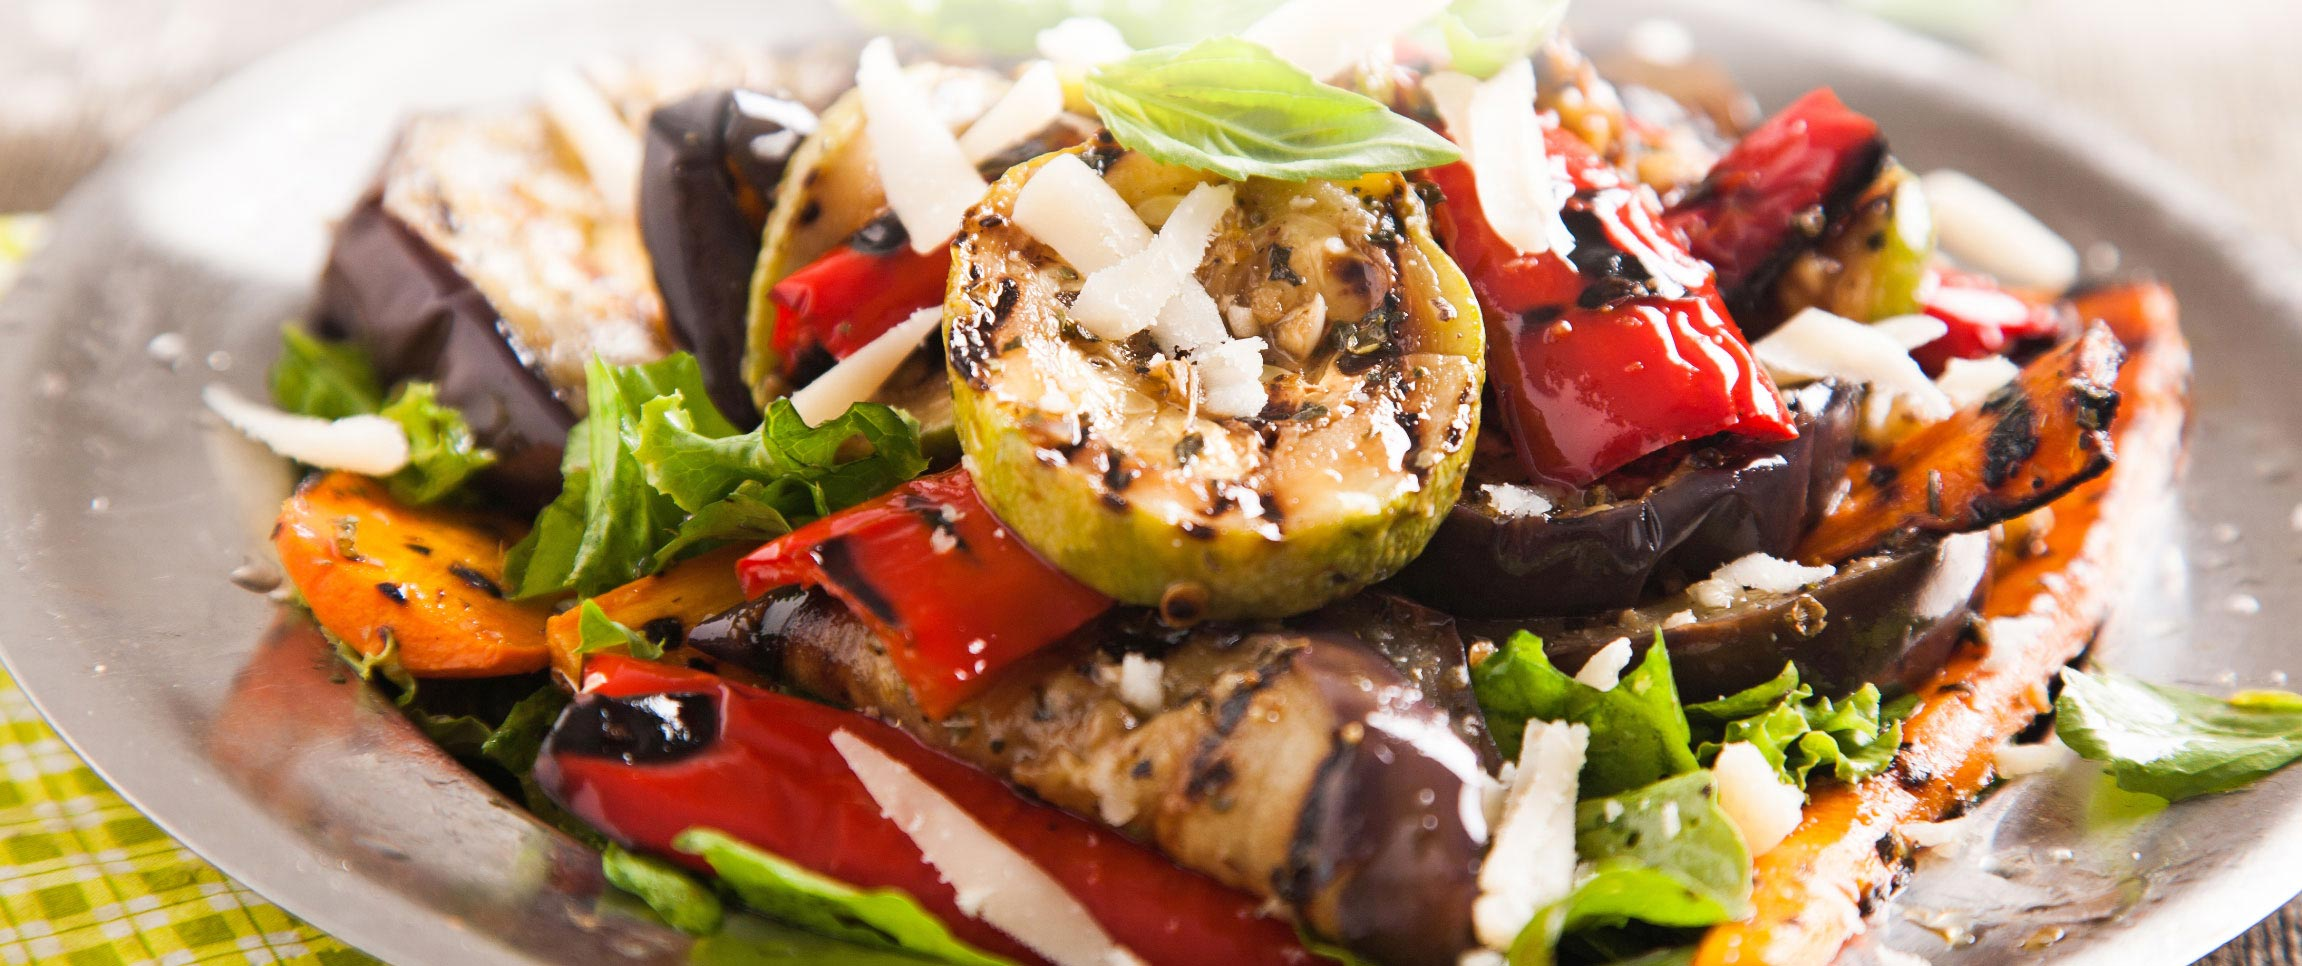 Healthy Summer Grilling Ideas